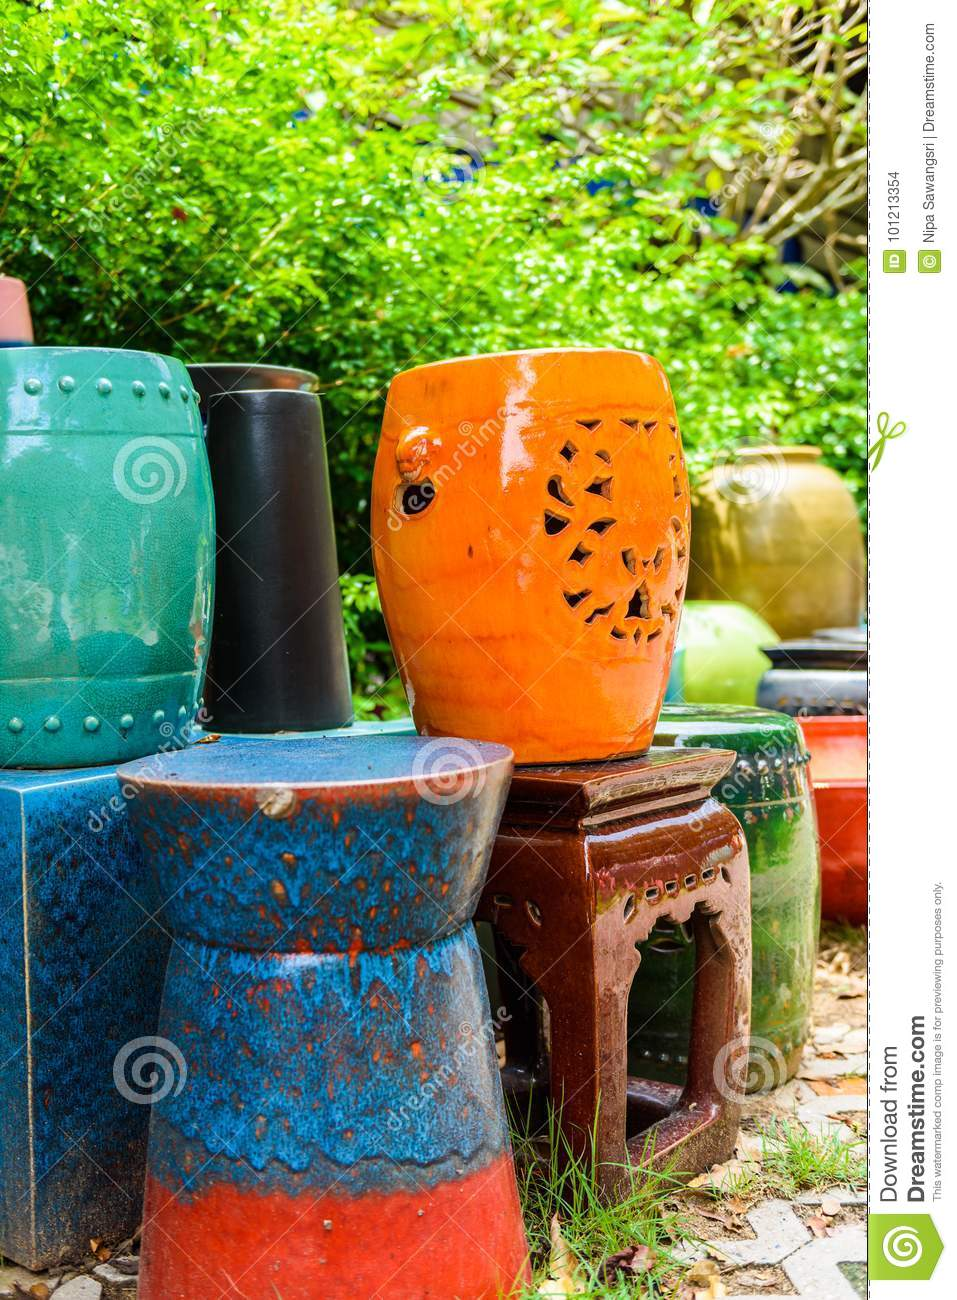 Multicolored Ceramic Bowls And Cups Handcrafted Stock Photo Image